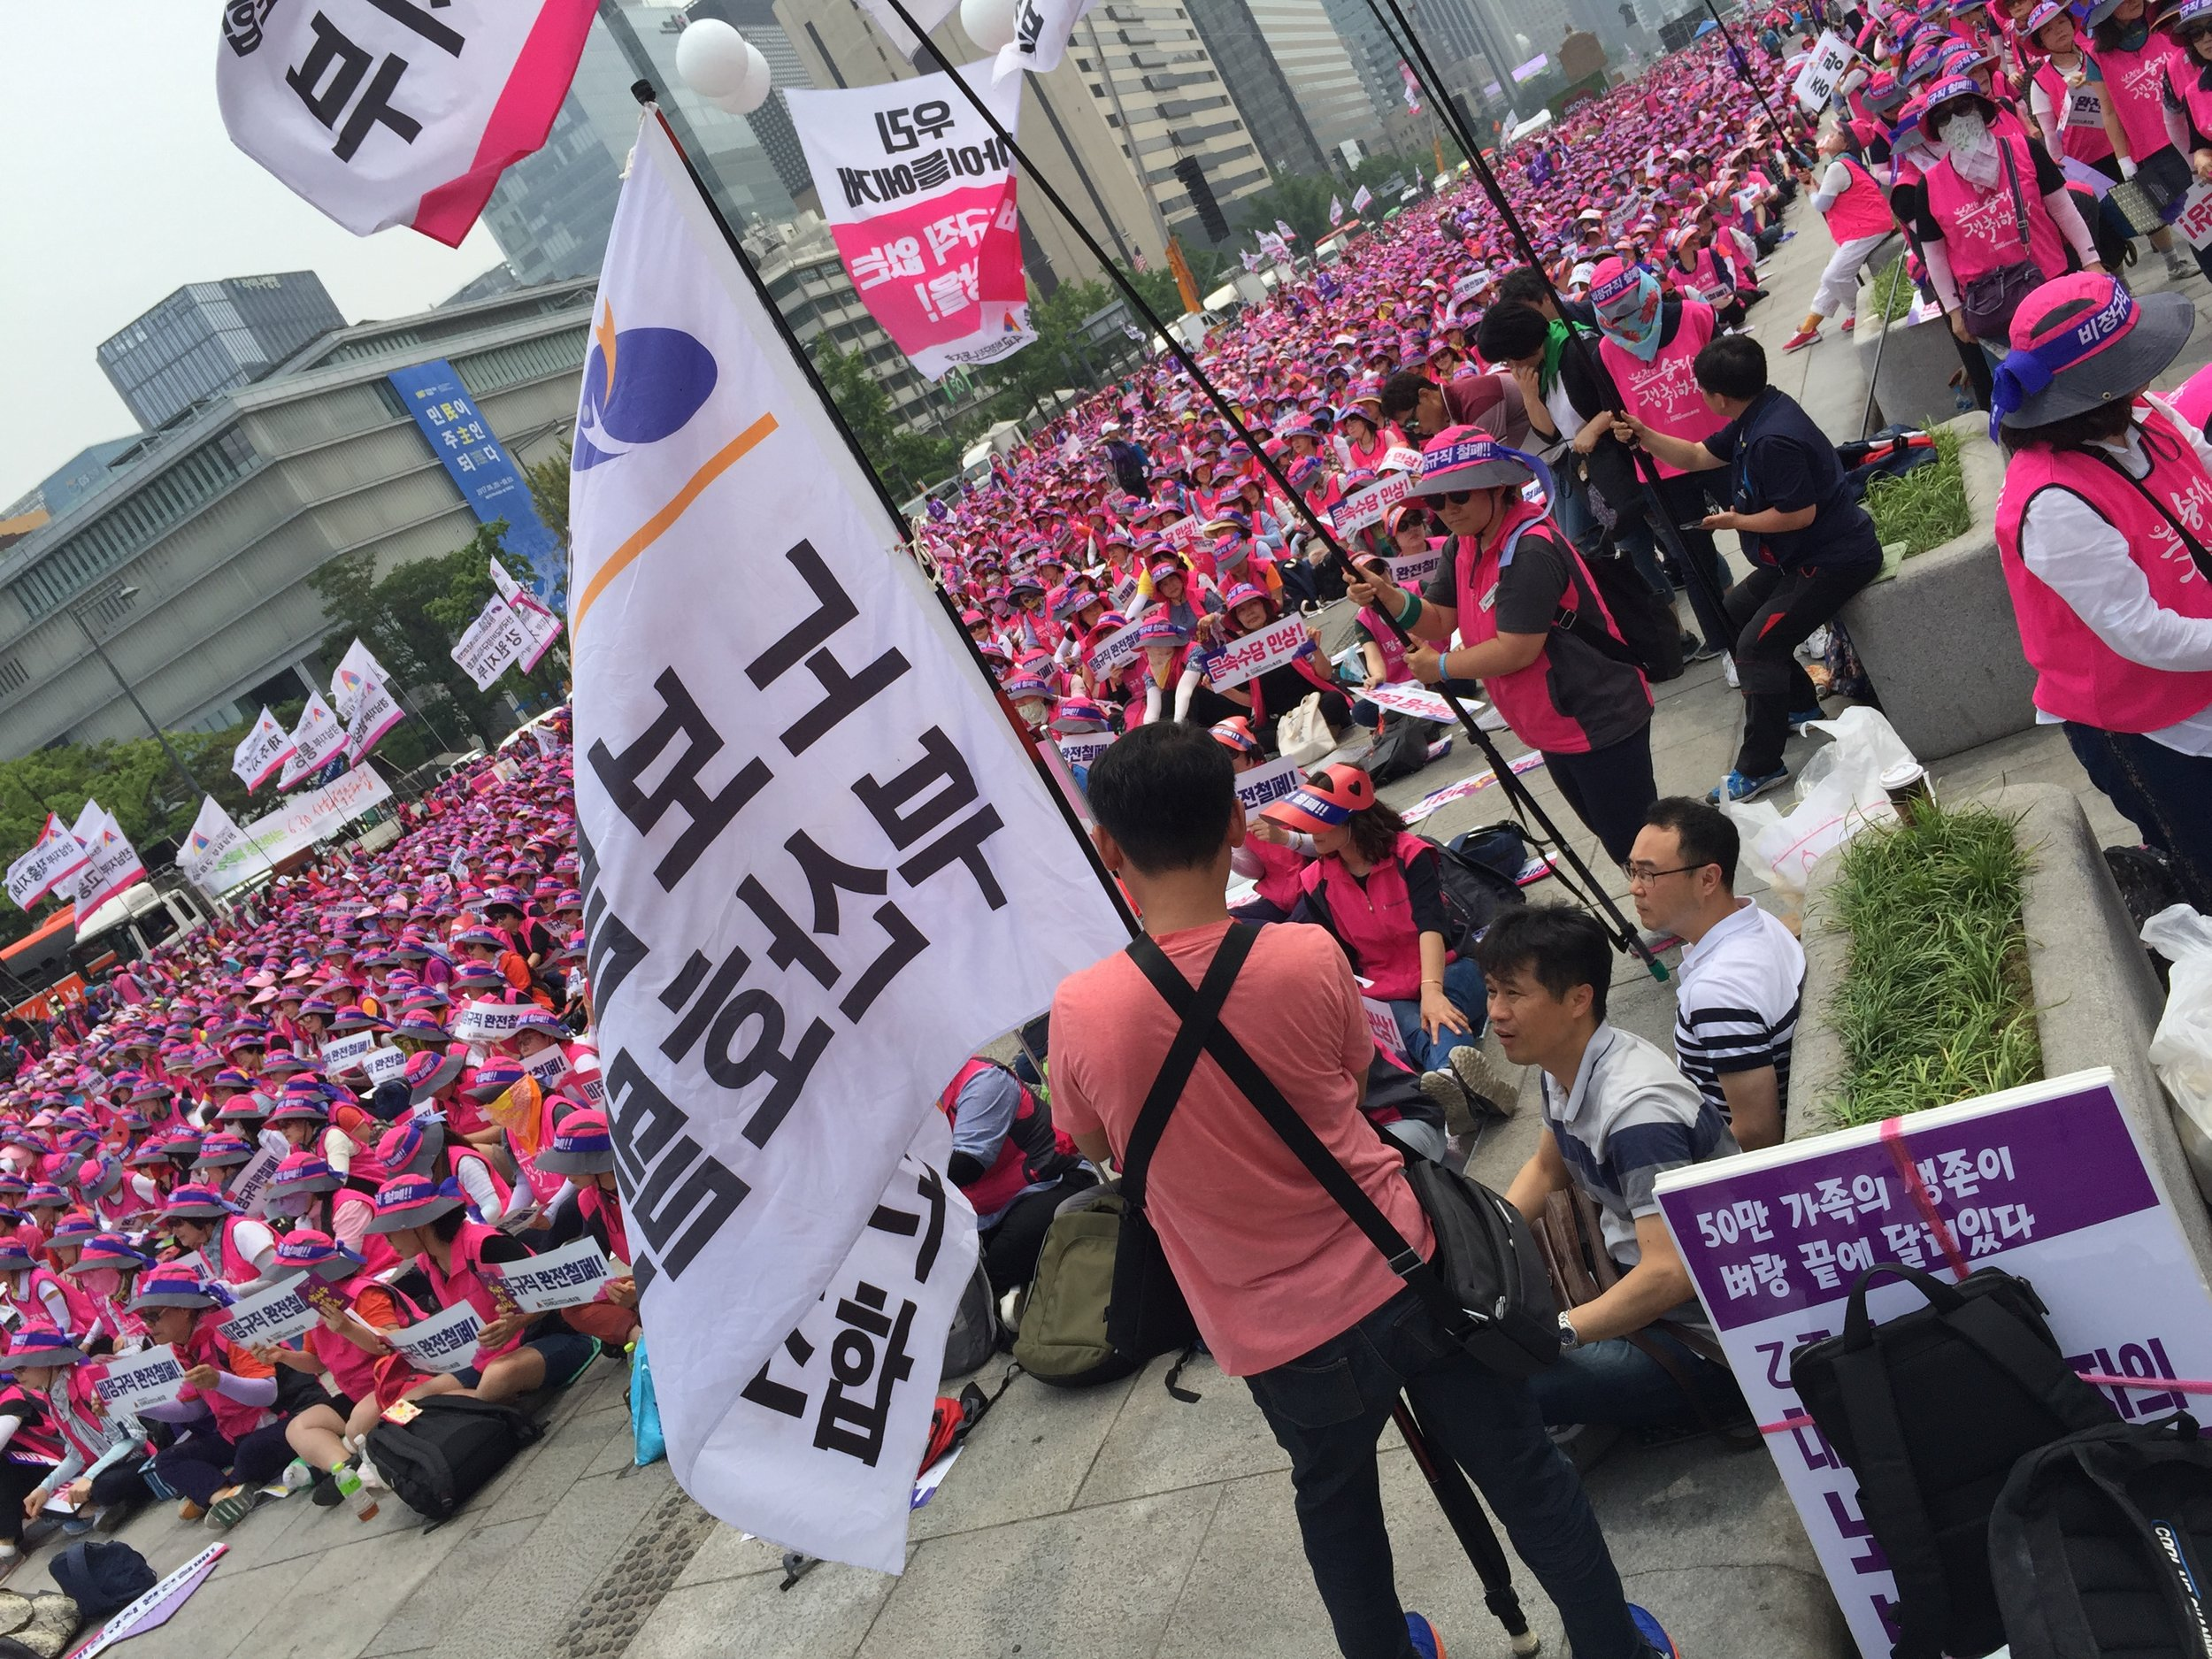 Some big event going on in front of 光化门 Kangwha Mun in Seoul. Wish I knew Korean! (later my Seoul mates told me it was a labor protest)